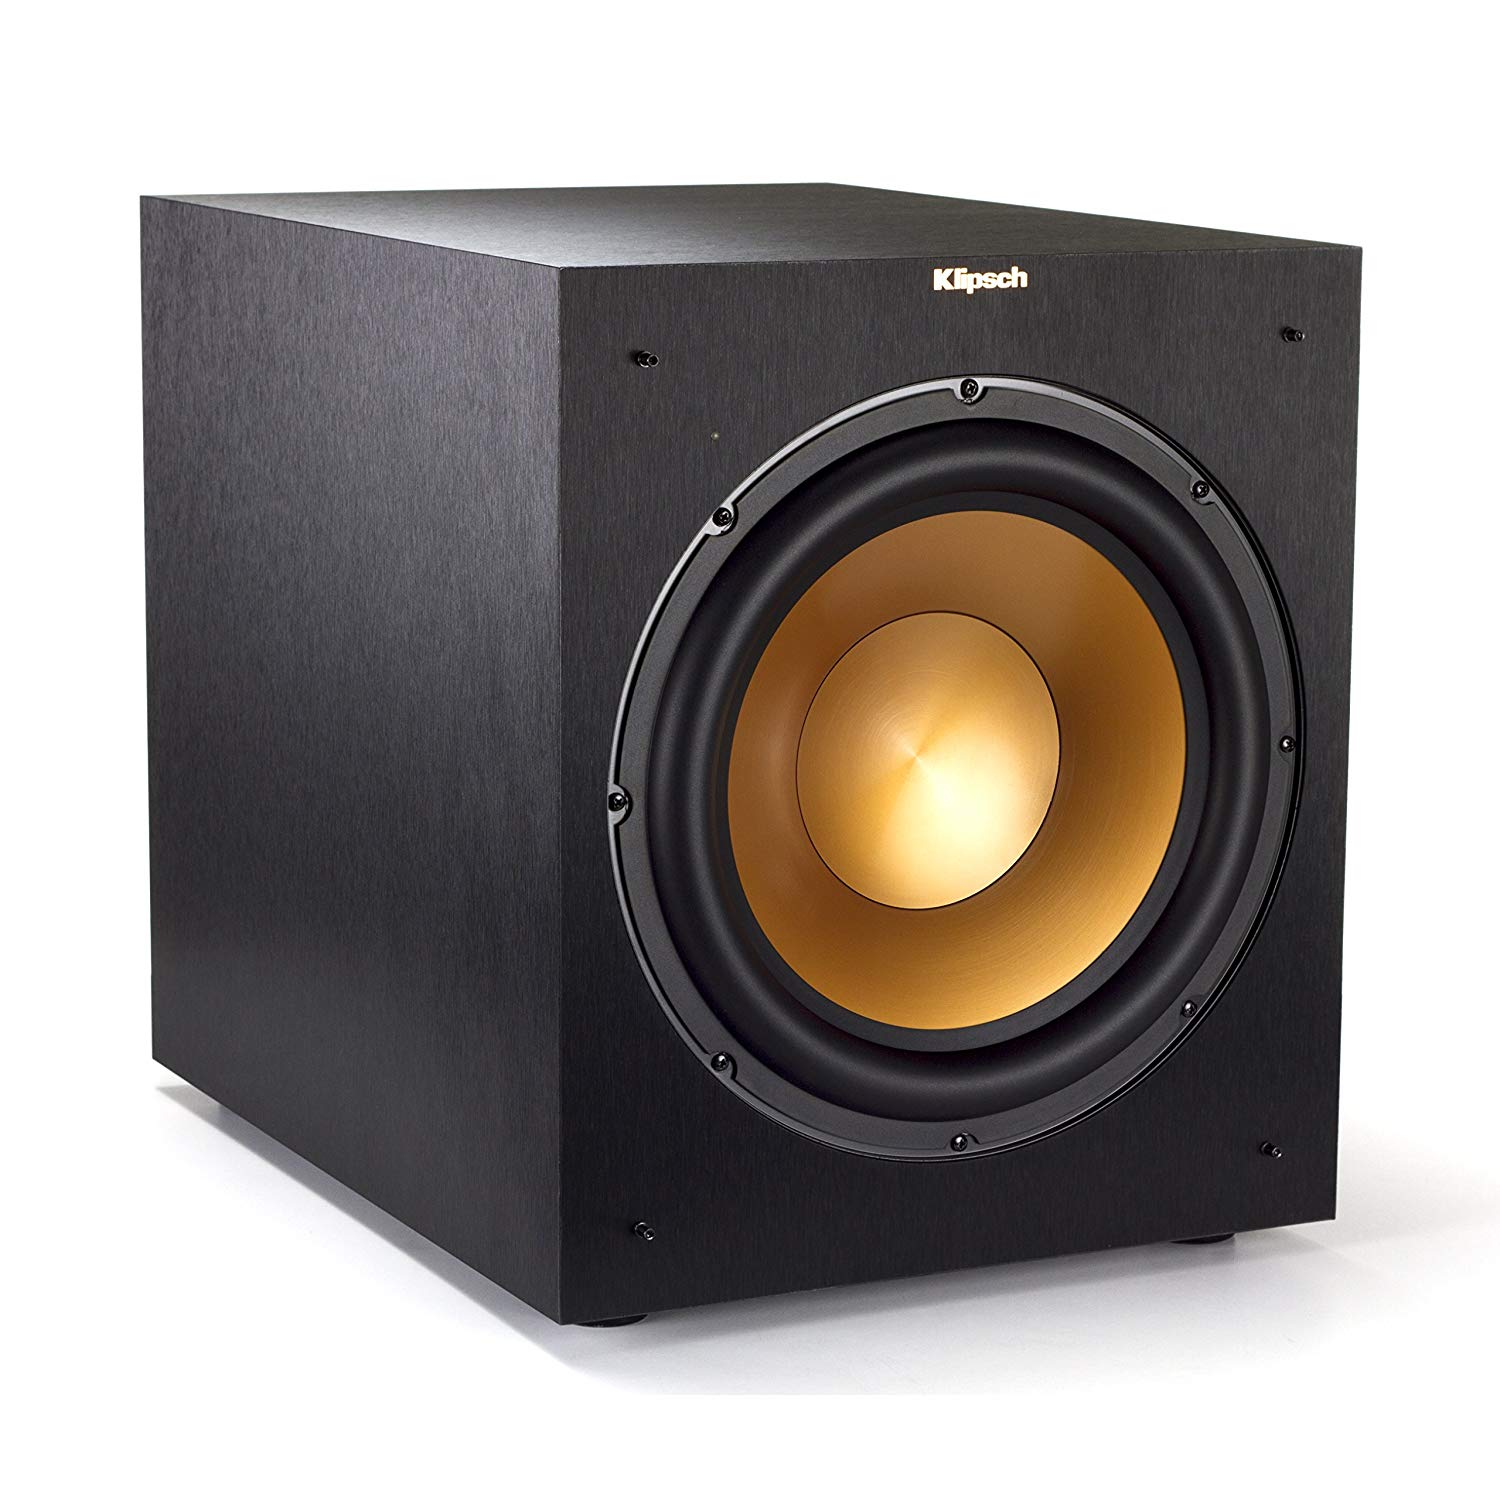 "Klipsch 12"" 400 Watts Wireless Subwoofer (R-12SWi)"